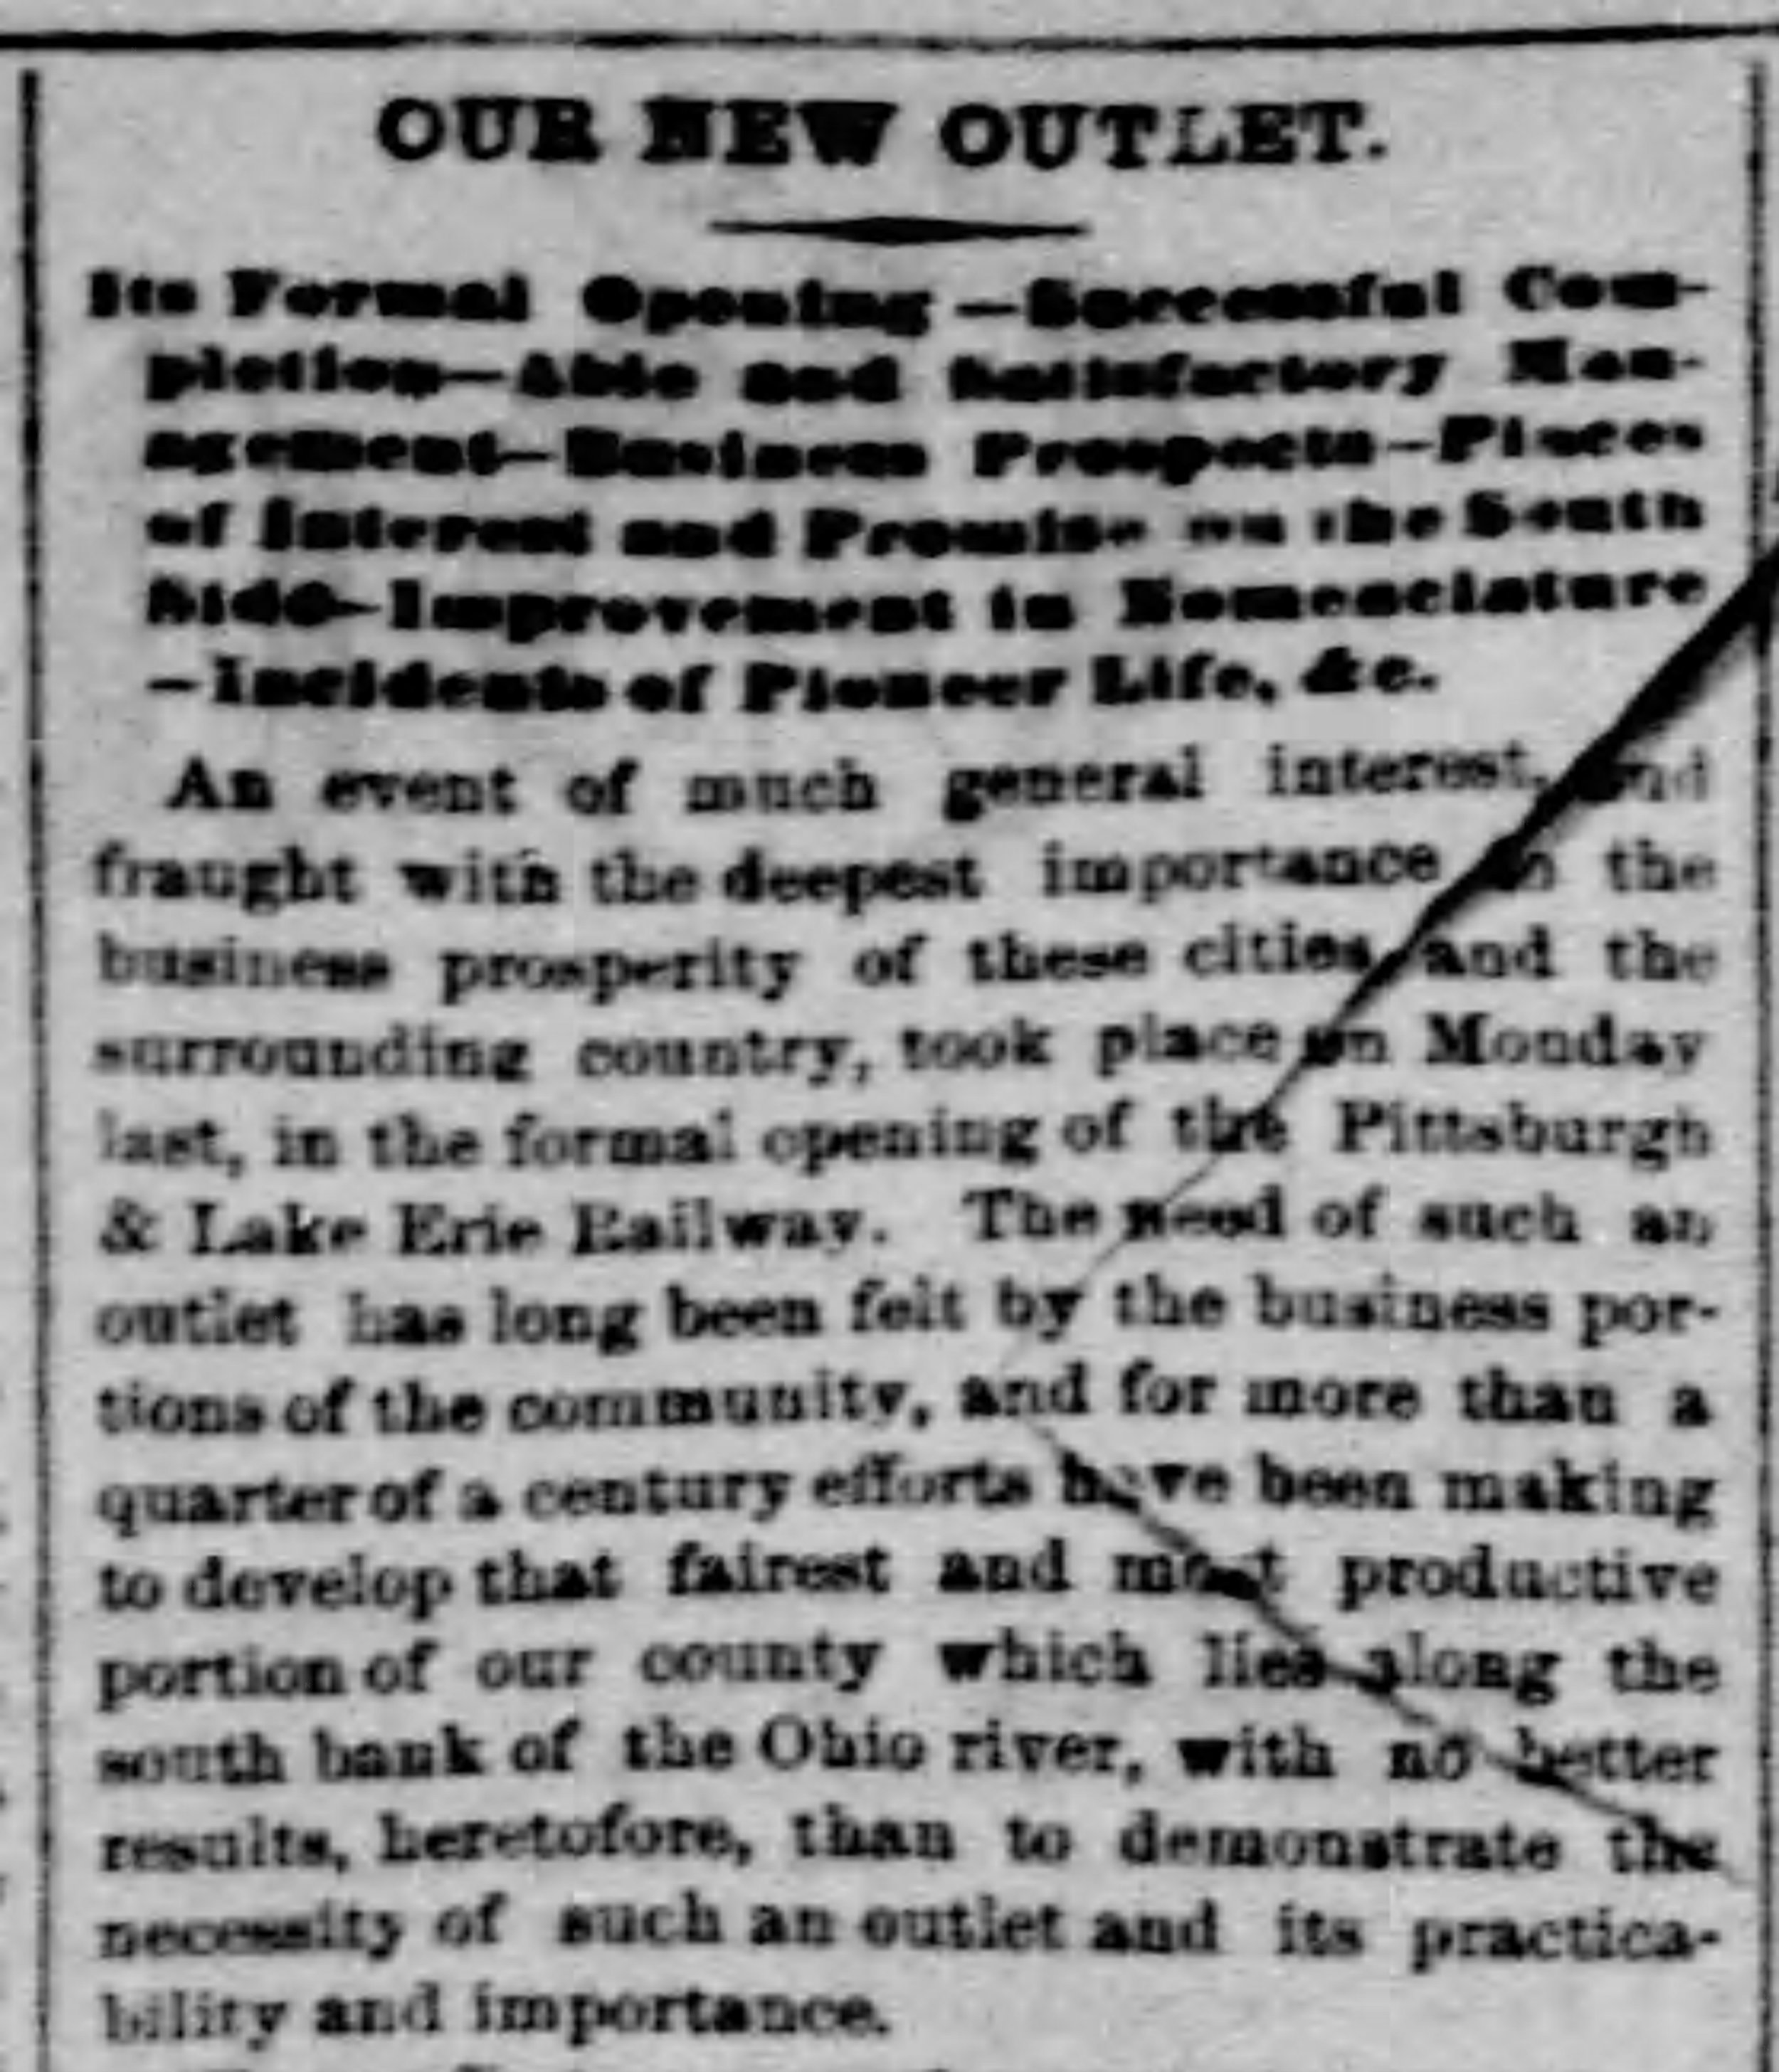 Our New Outlet - Pittsburgh_Post_Gazette_Wed__Feb_26__1879(a).jpg